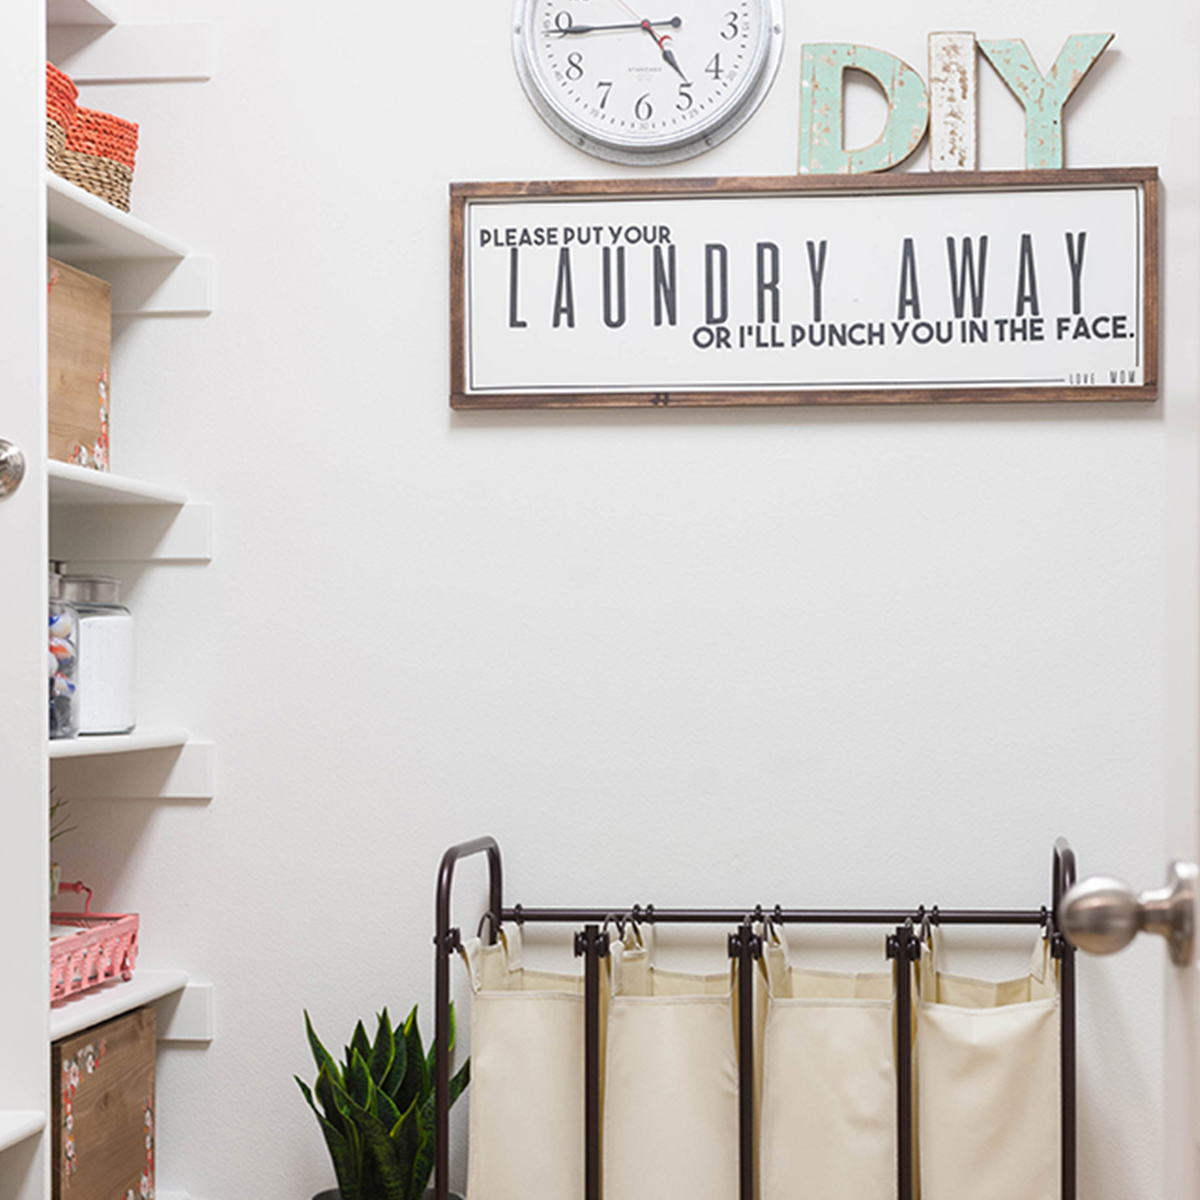 Organized laundry room featuring galvanized metal clock and laundry sorter. photo